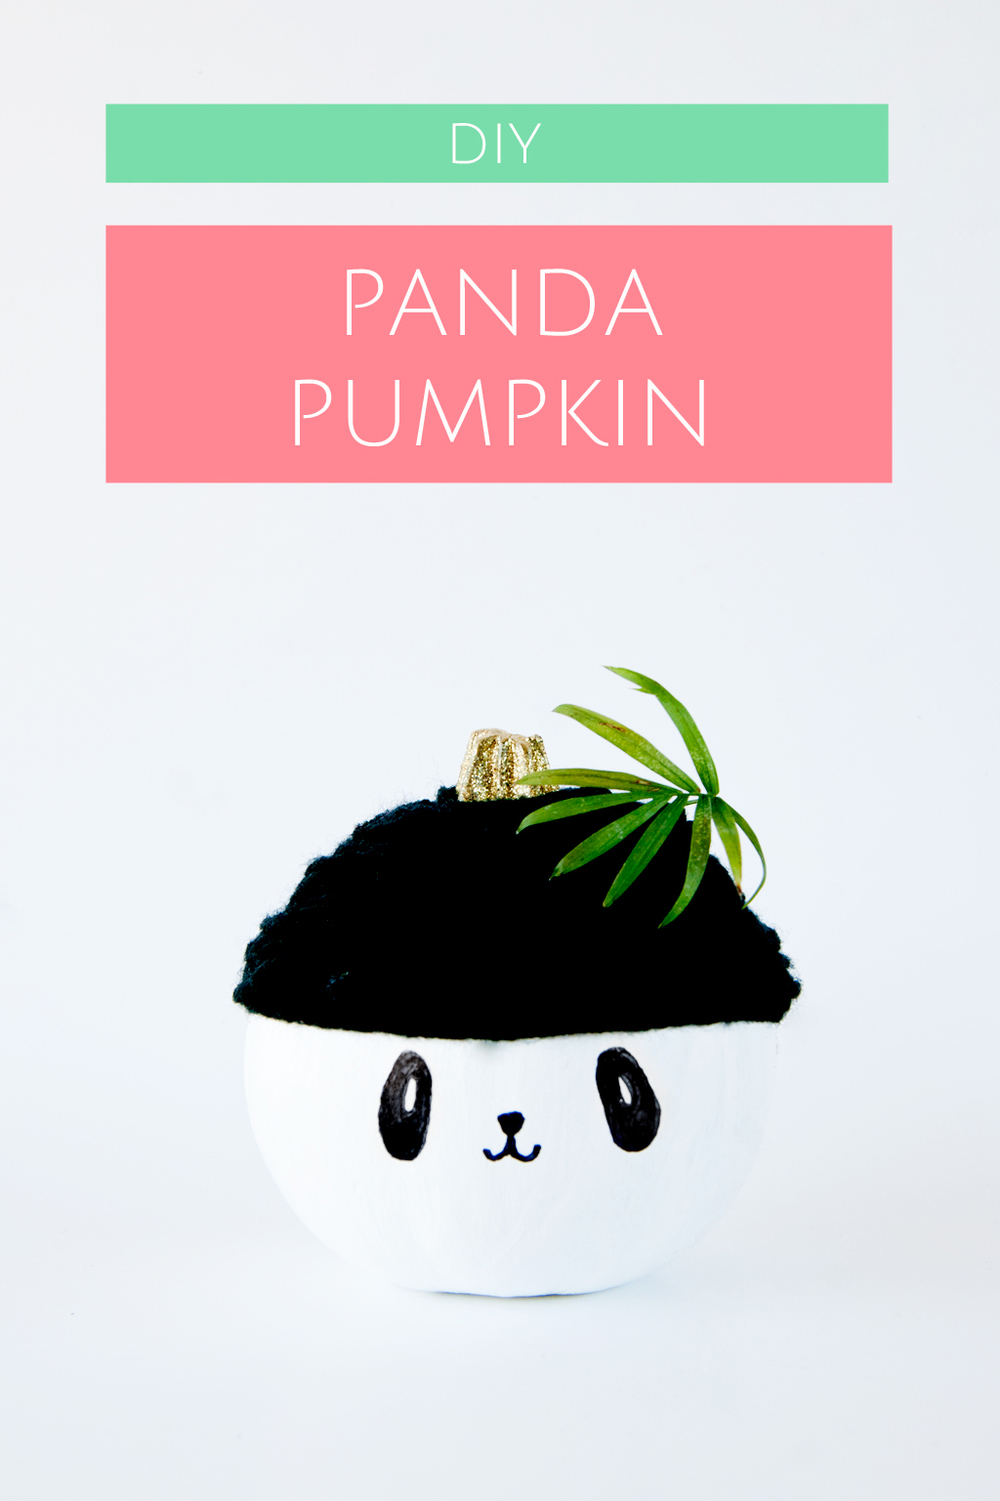 Dress up your pumpkin as a cozy panda for Halloween